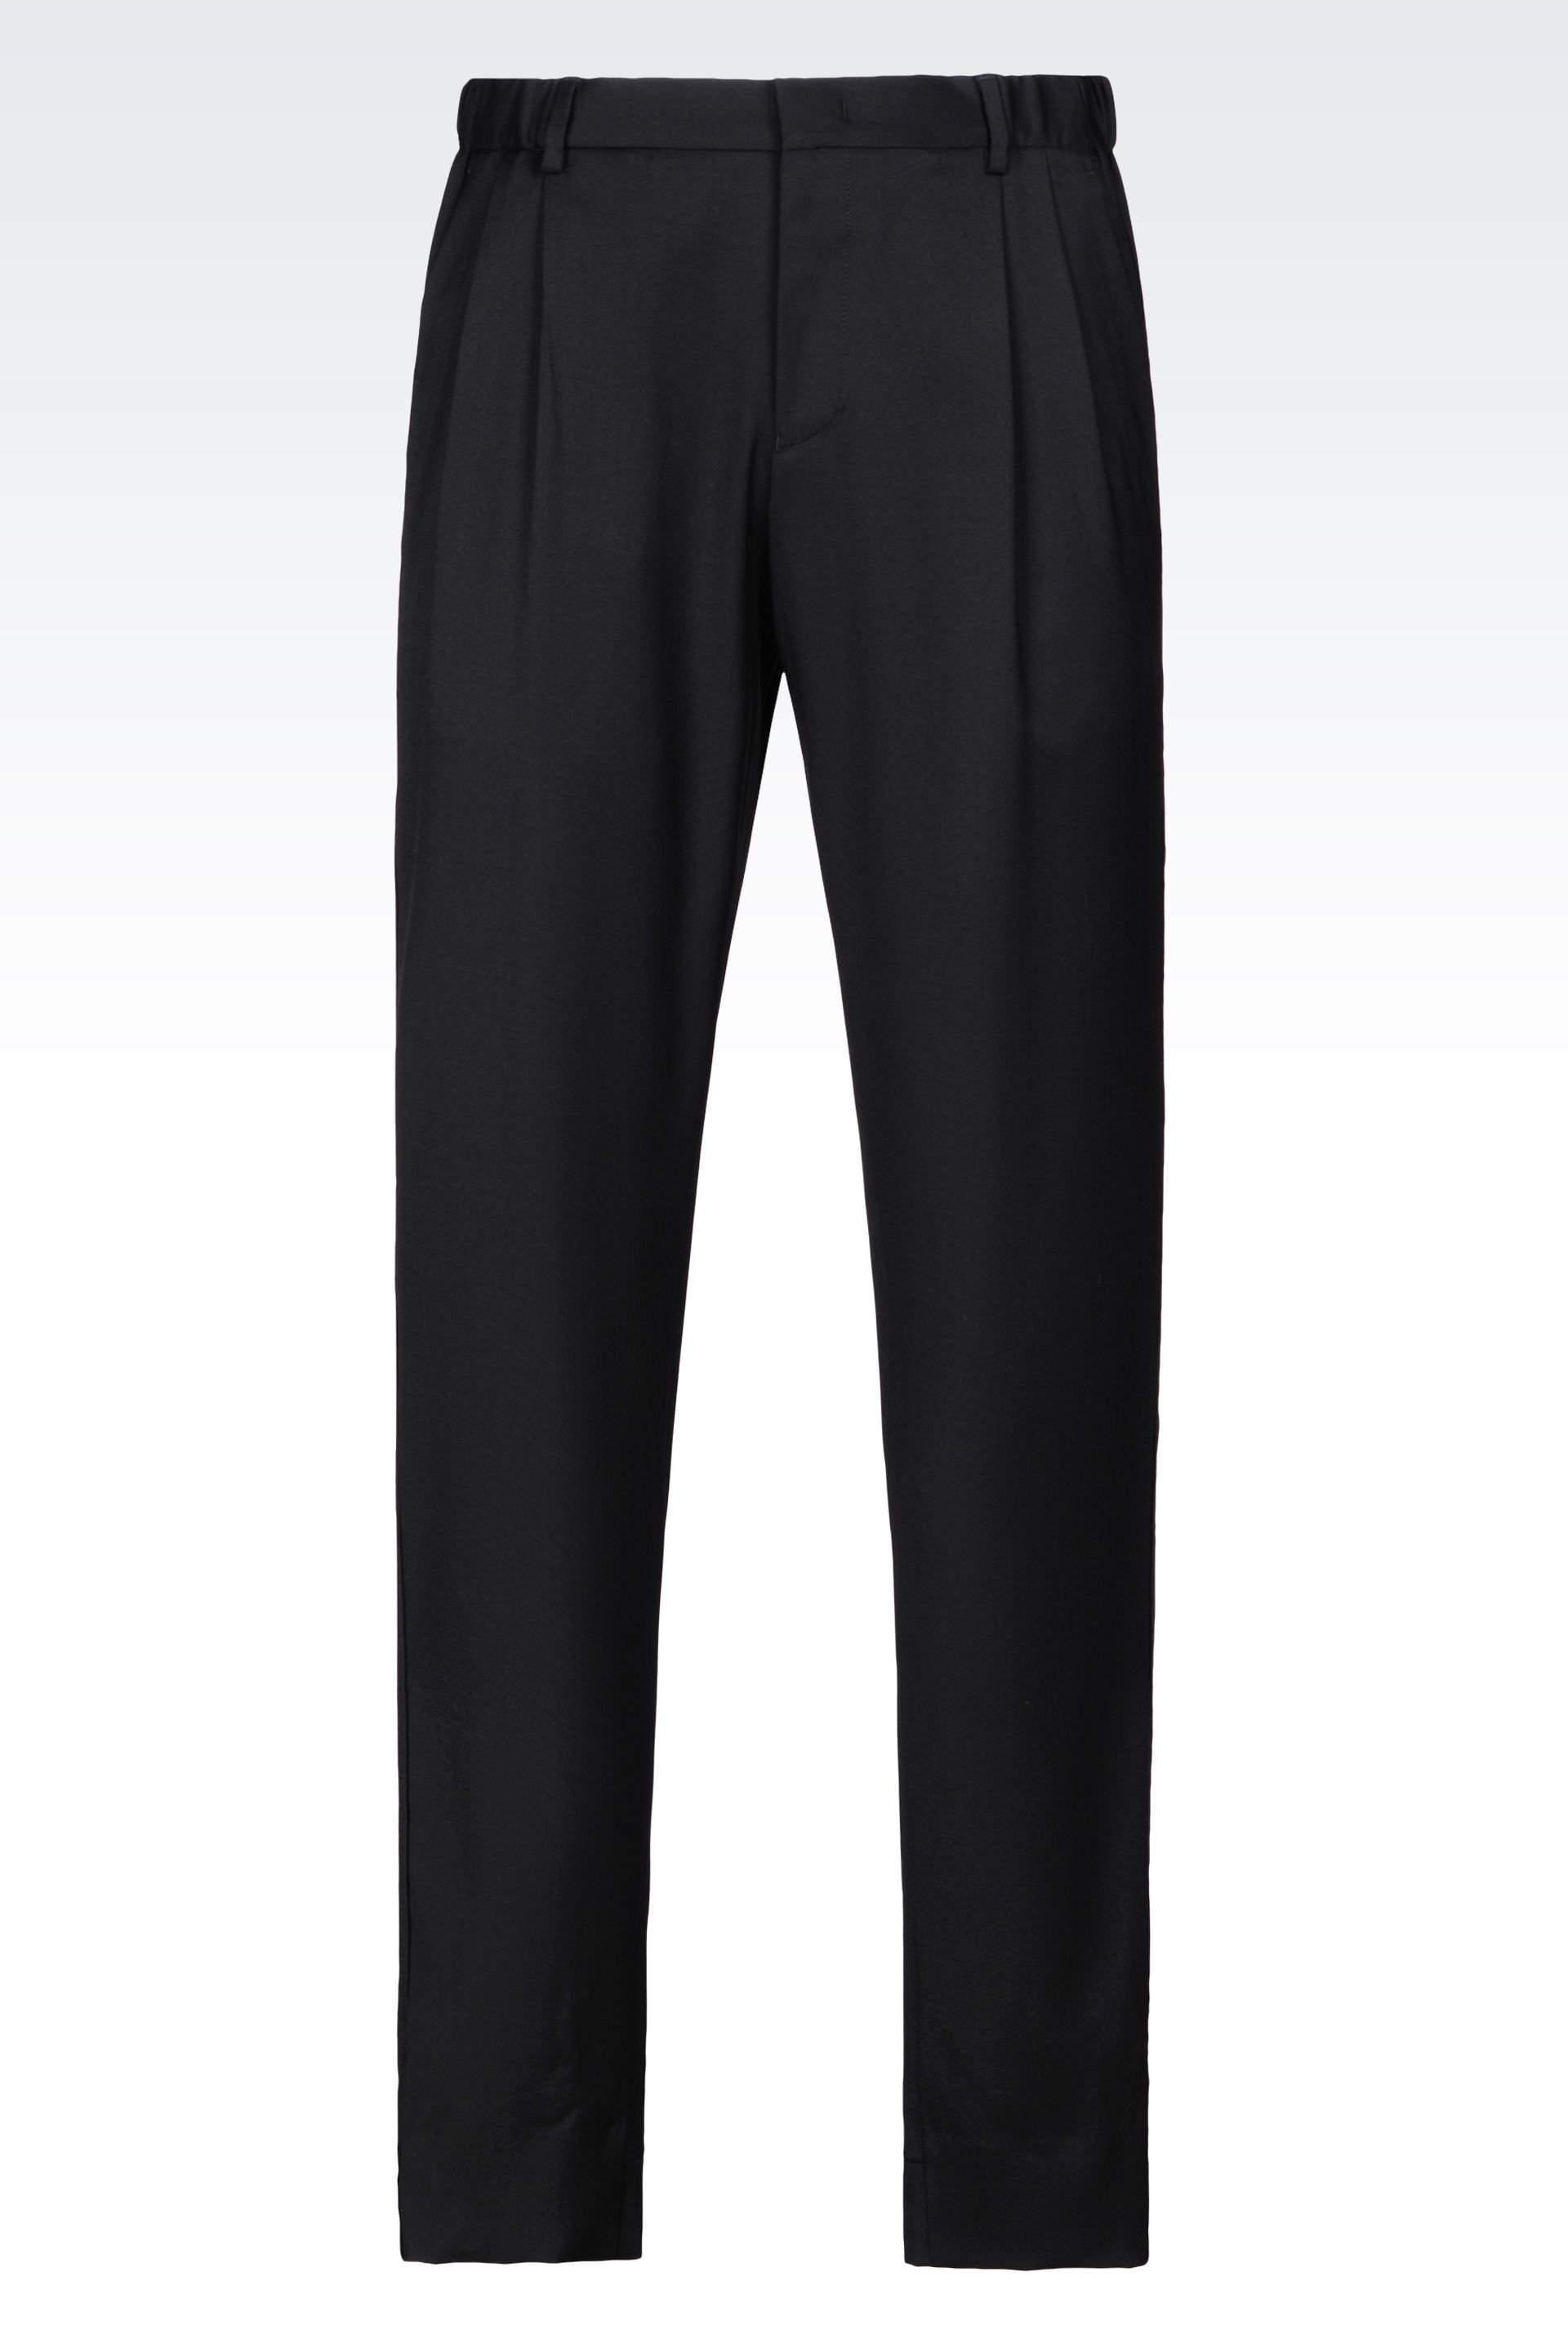 Armani Worsted Wool Trousers – summer dress pants for men